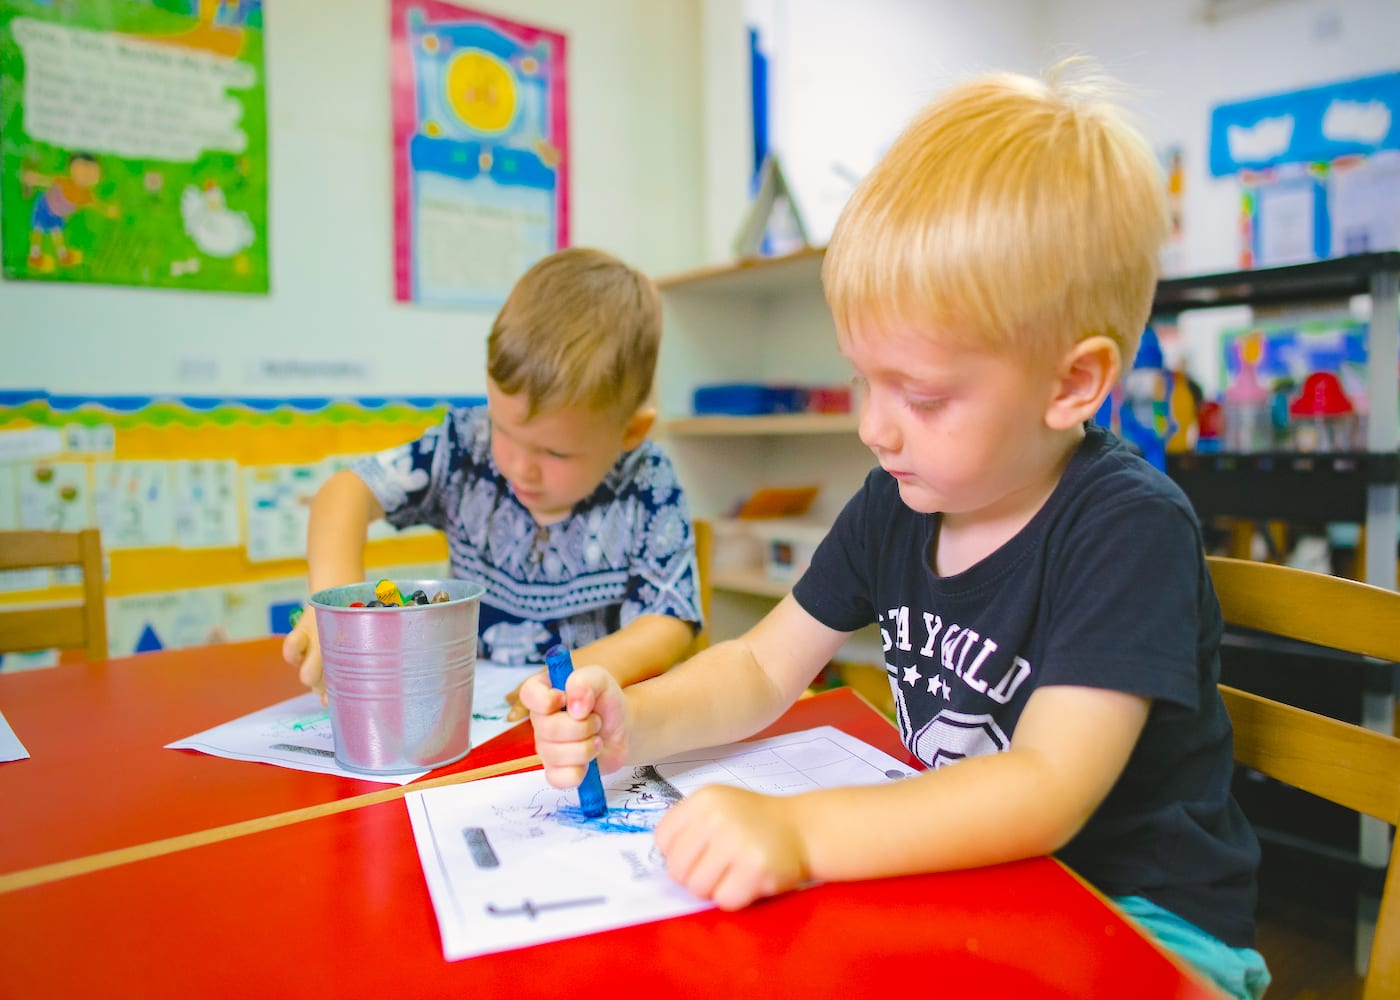 Is preschool really worth it? Learning experts say yes!